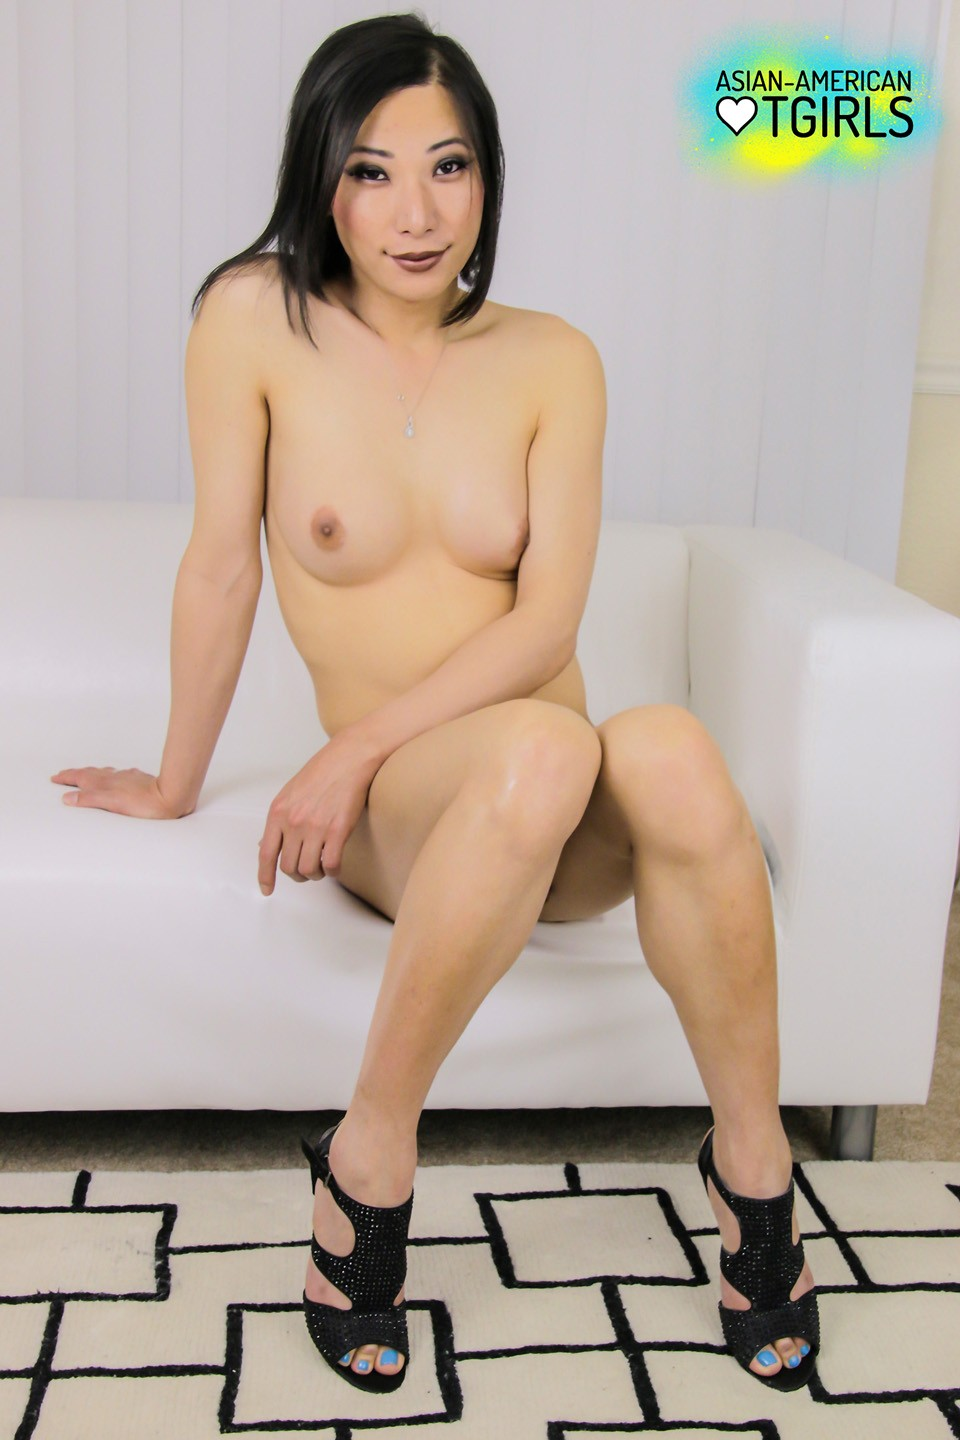 asian tgirl porn Archives - British TGirls